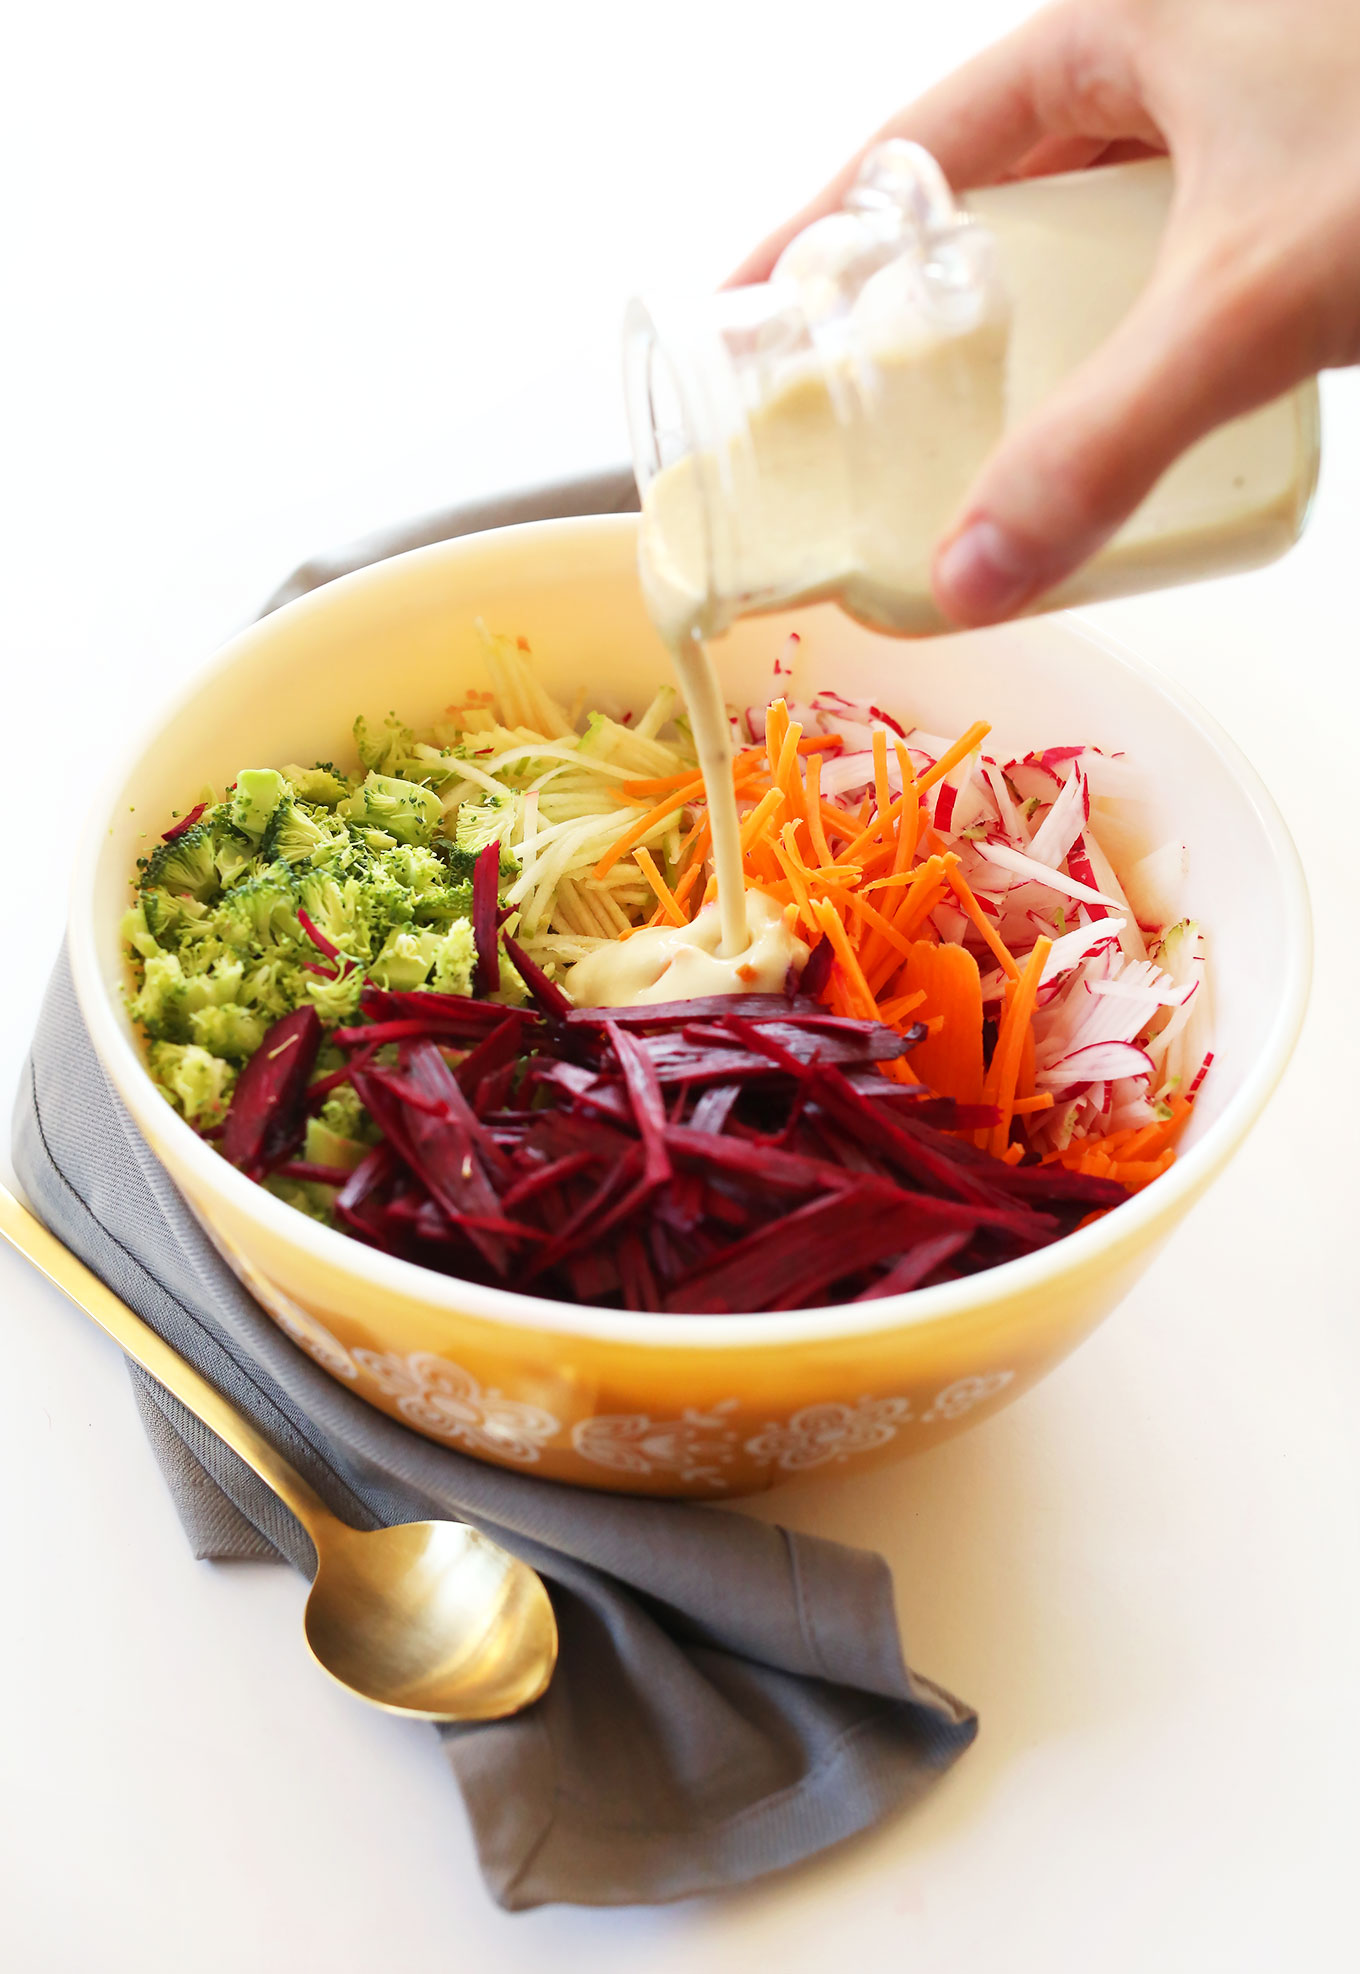 Pouring creamy vegan dressing onto our fall slaw